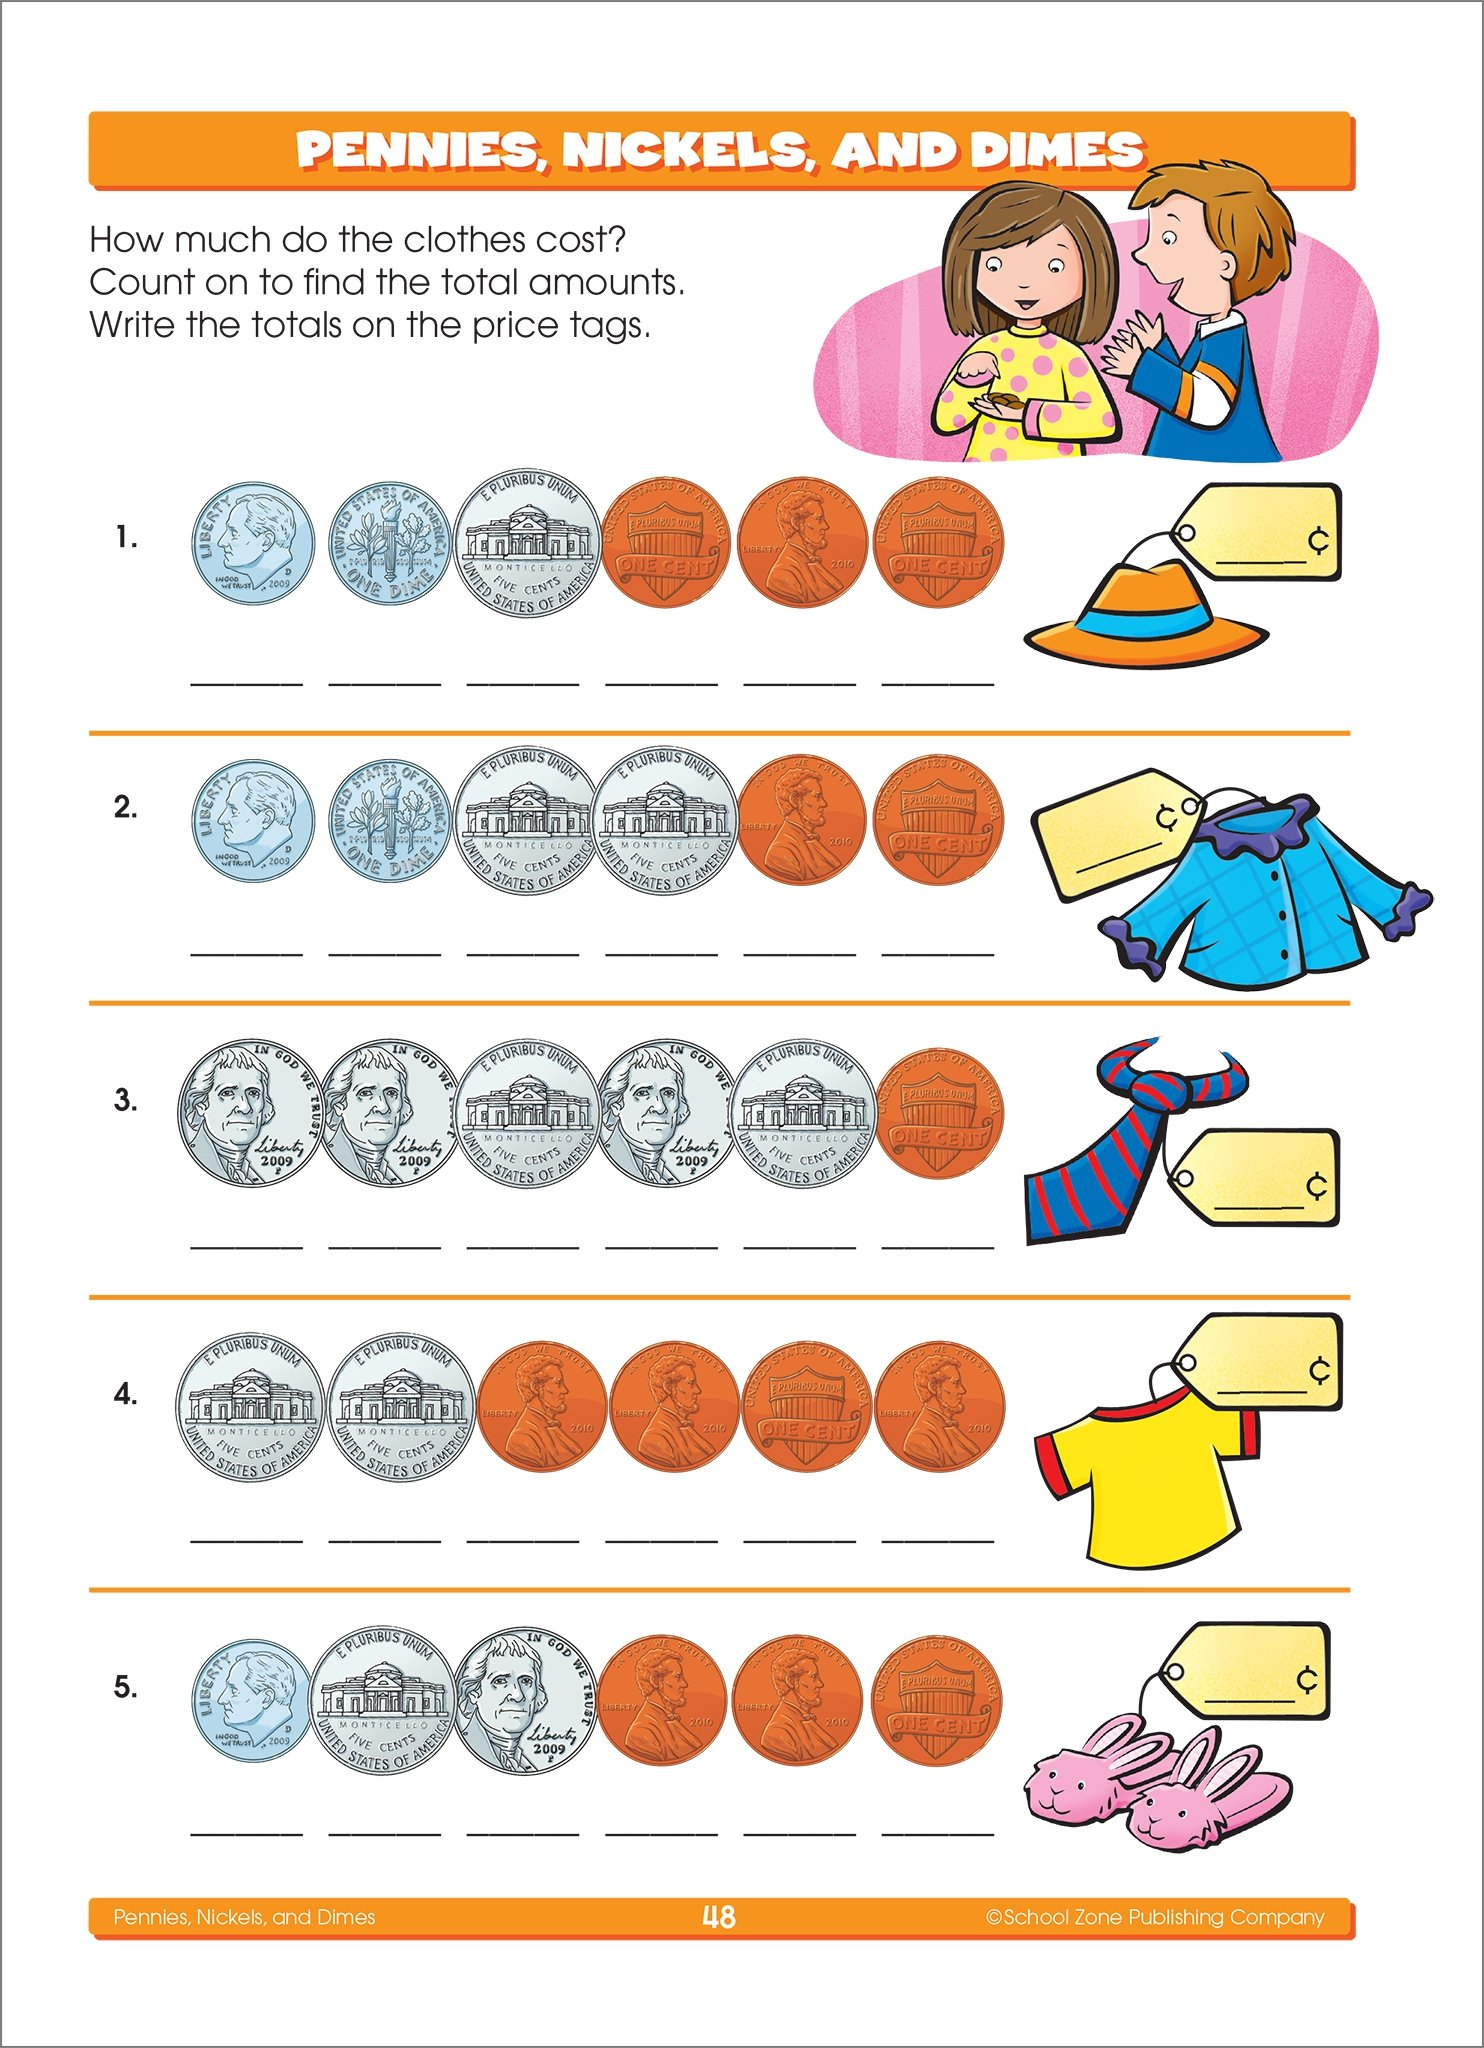 worksheet Counting Dimes And Pennies counting pennies nickels and dimes worksheets addition division with 81nh5ghvqel worksheetshtml